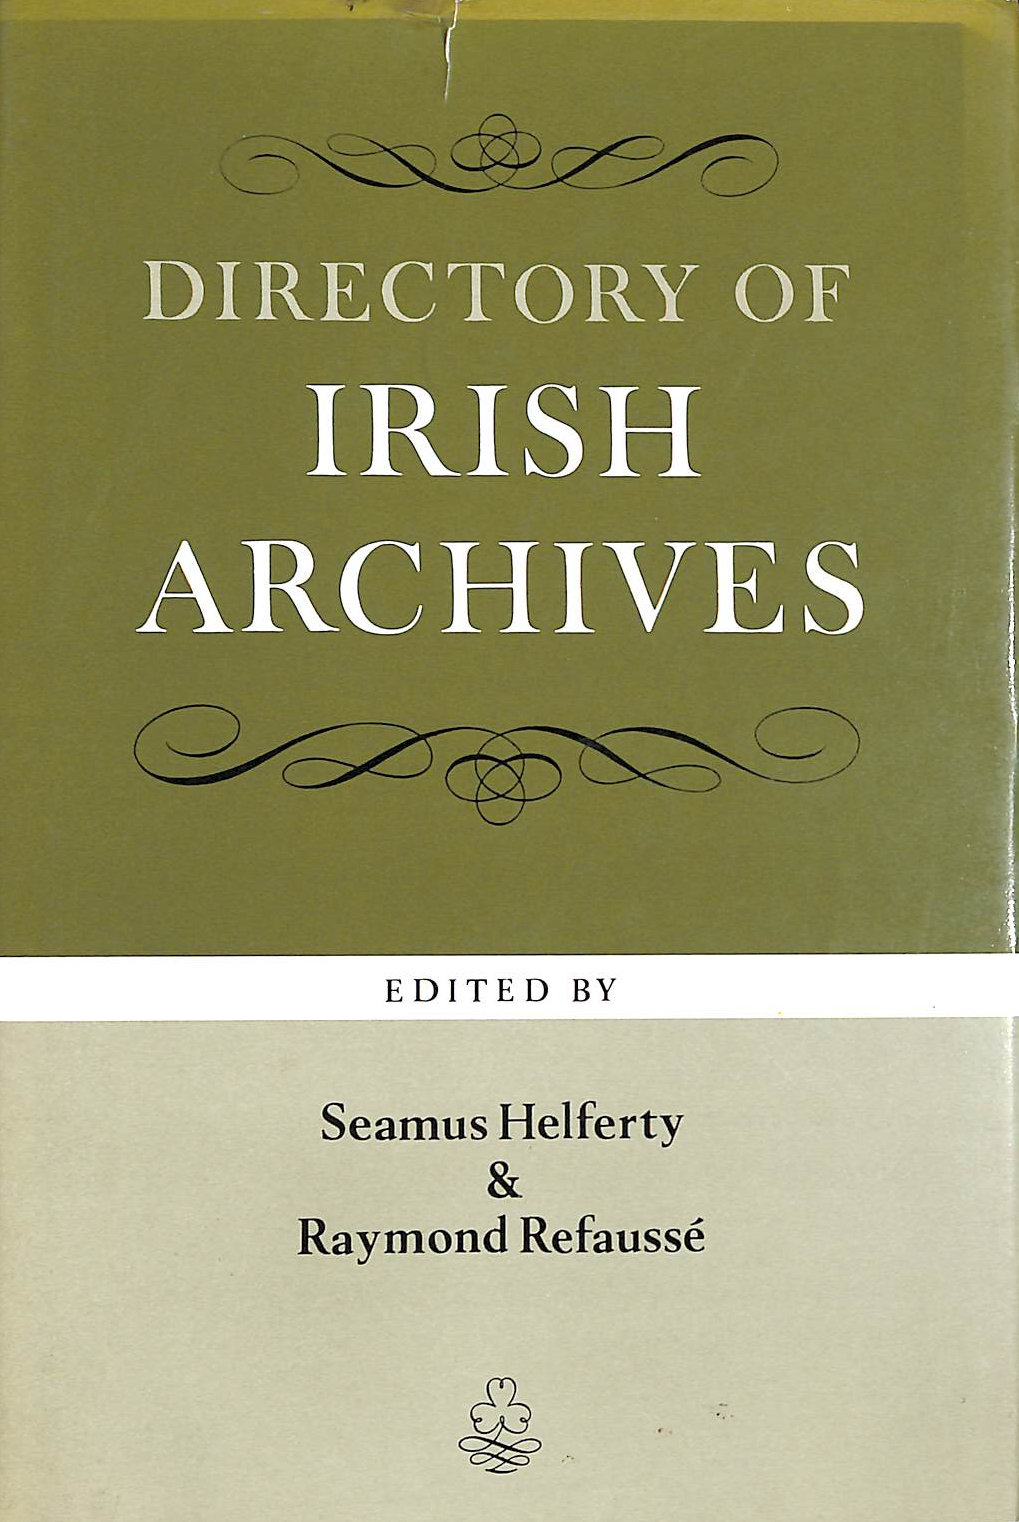 Image for Directory of Irish Archives (History)